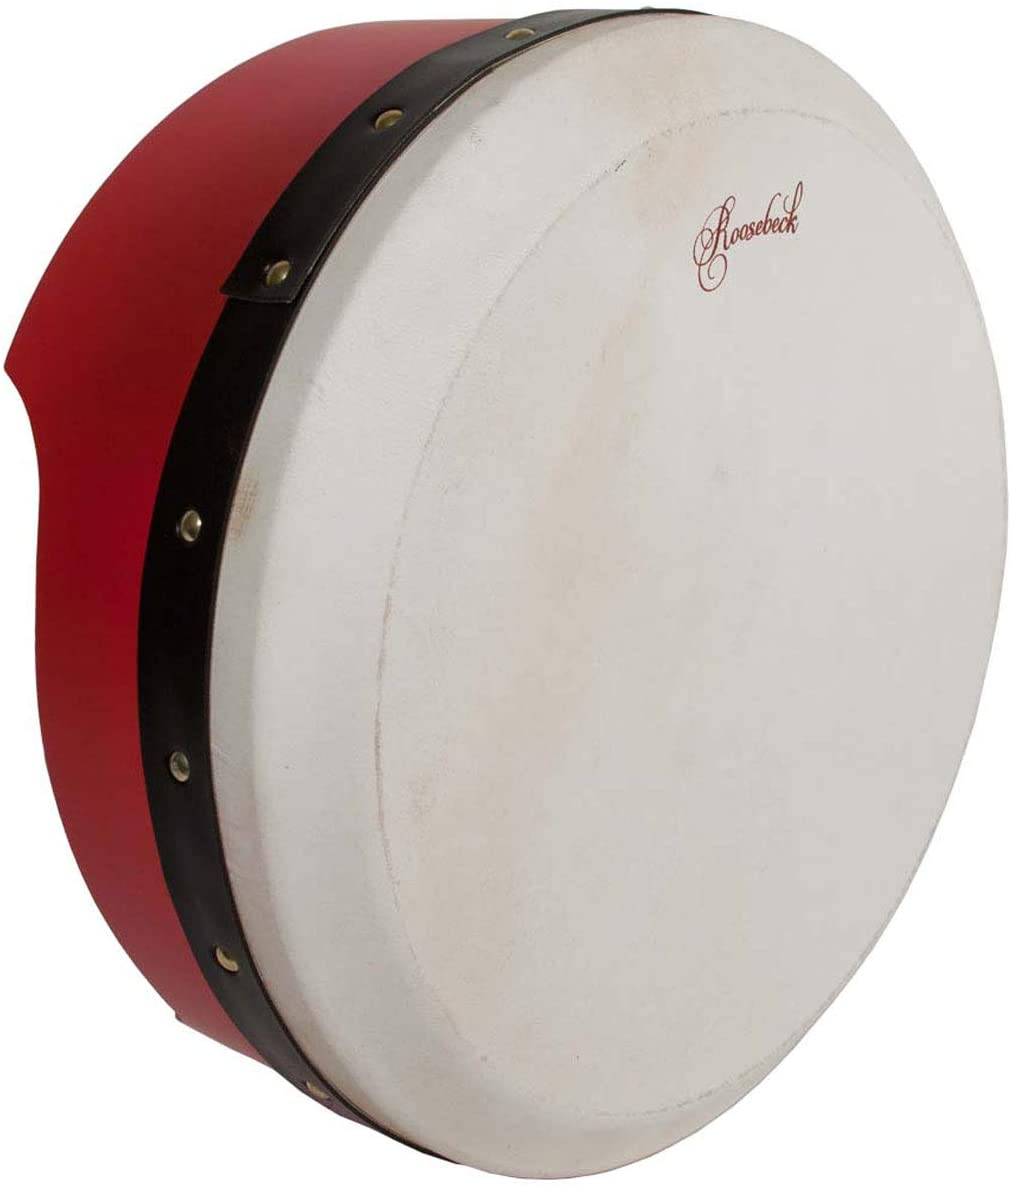 Roosebeck Tunable Ply Bodhran 13InchX5Inch - Red